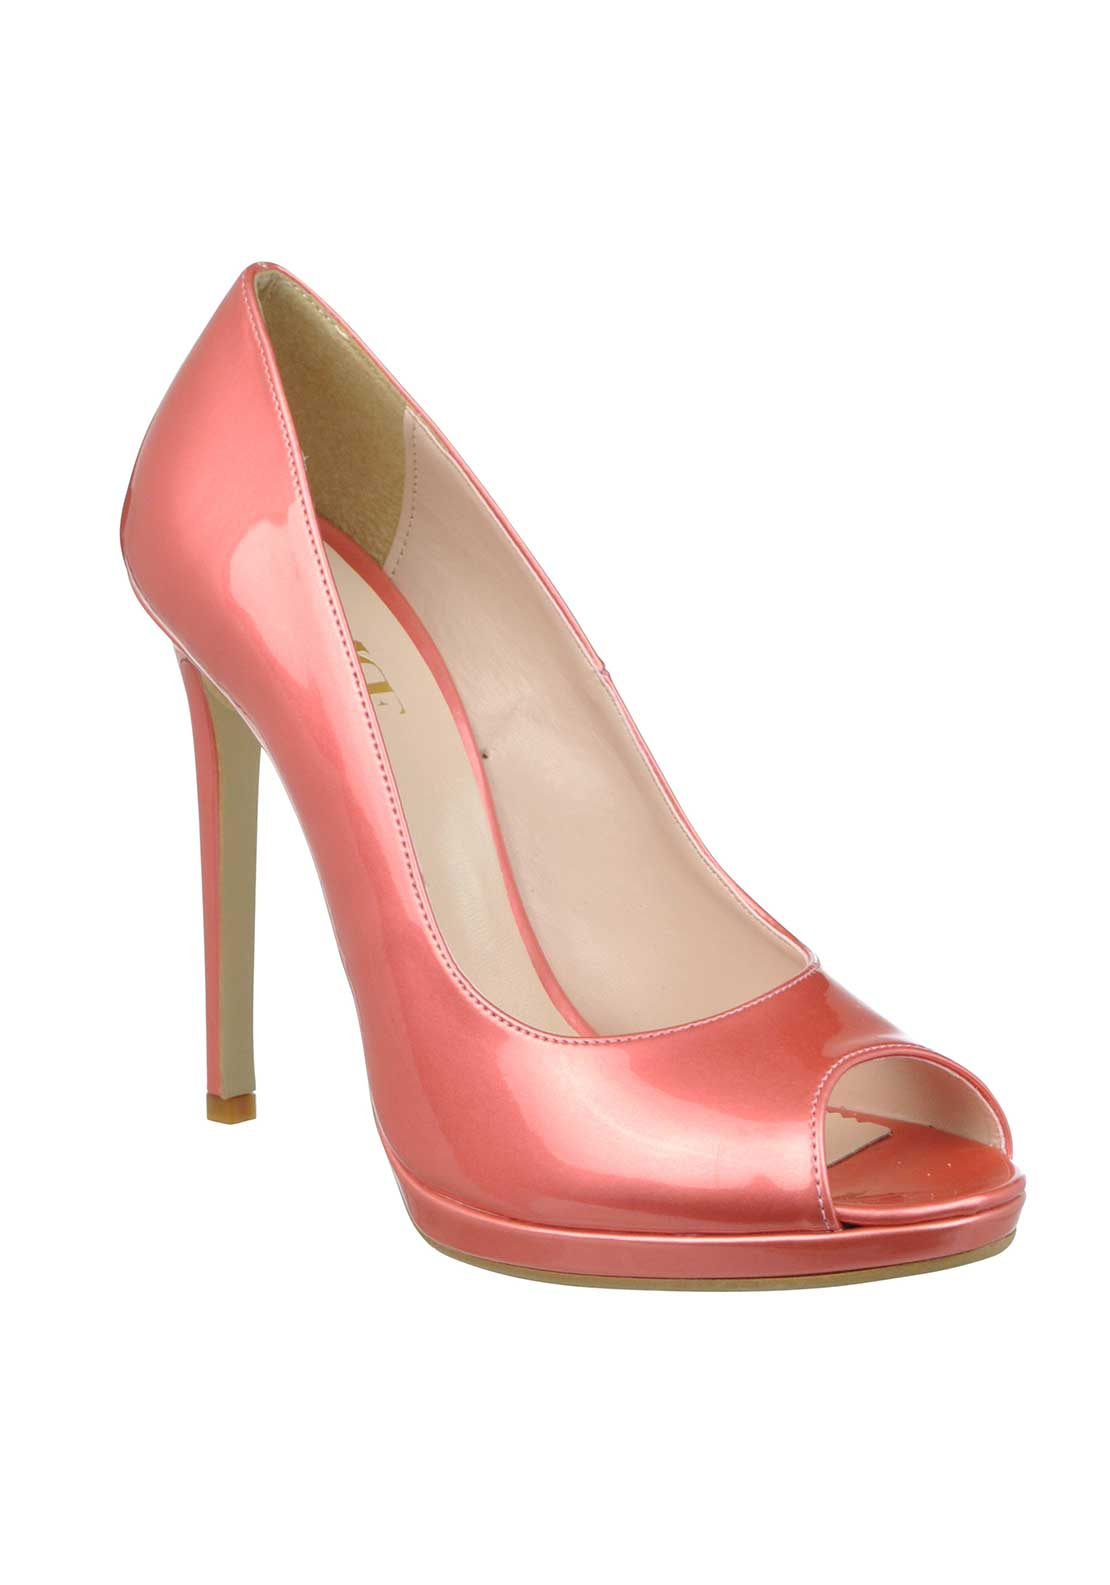 McElhinney's Patent Peep Toe Heeled Shoes, Coral